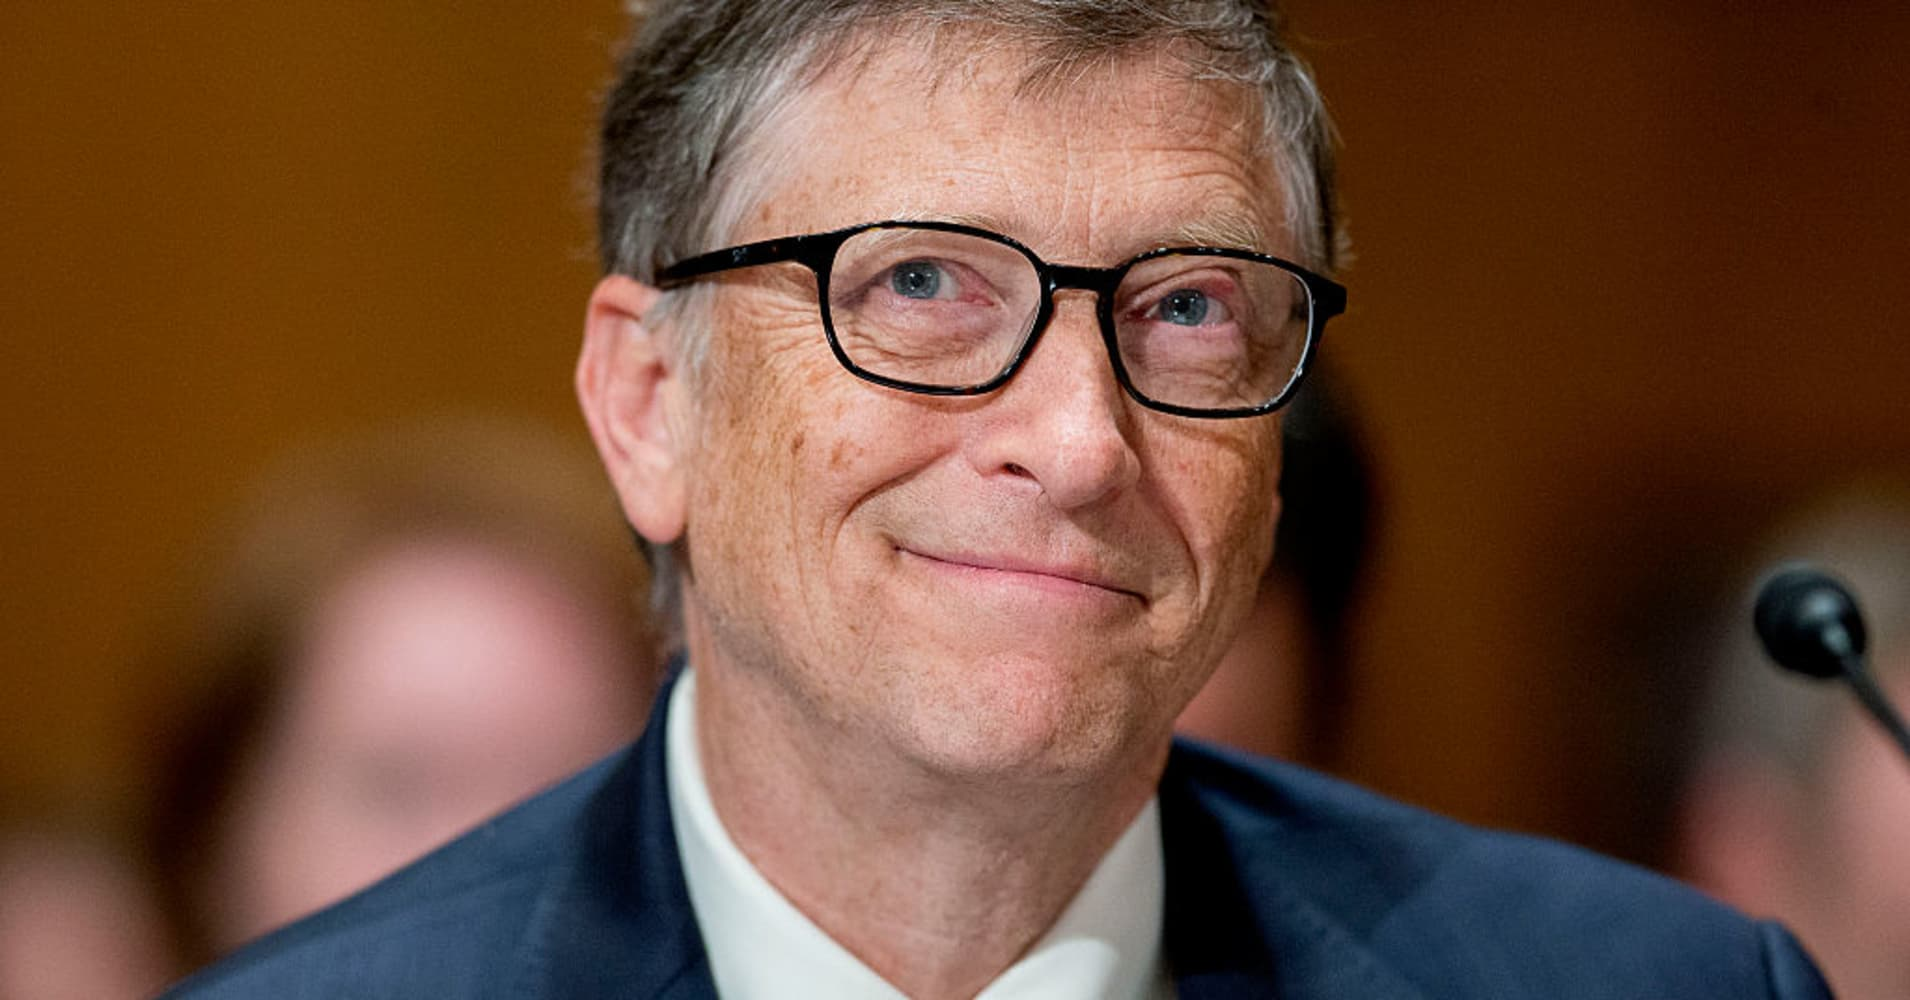 Bill Gates says his new favorite habit helps him focus—and it only takes 30 minutes per week